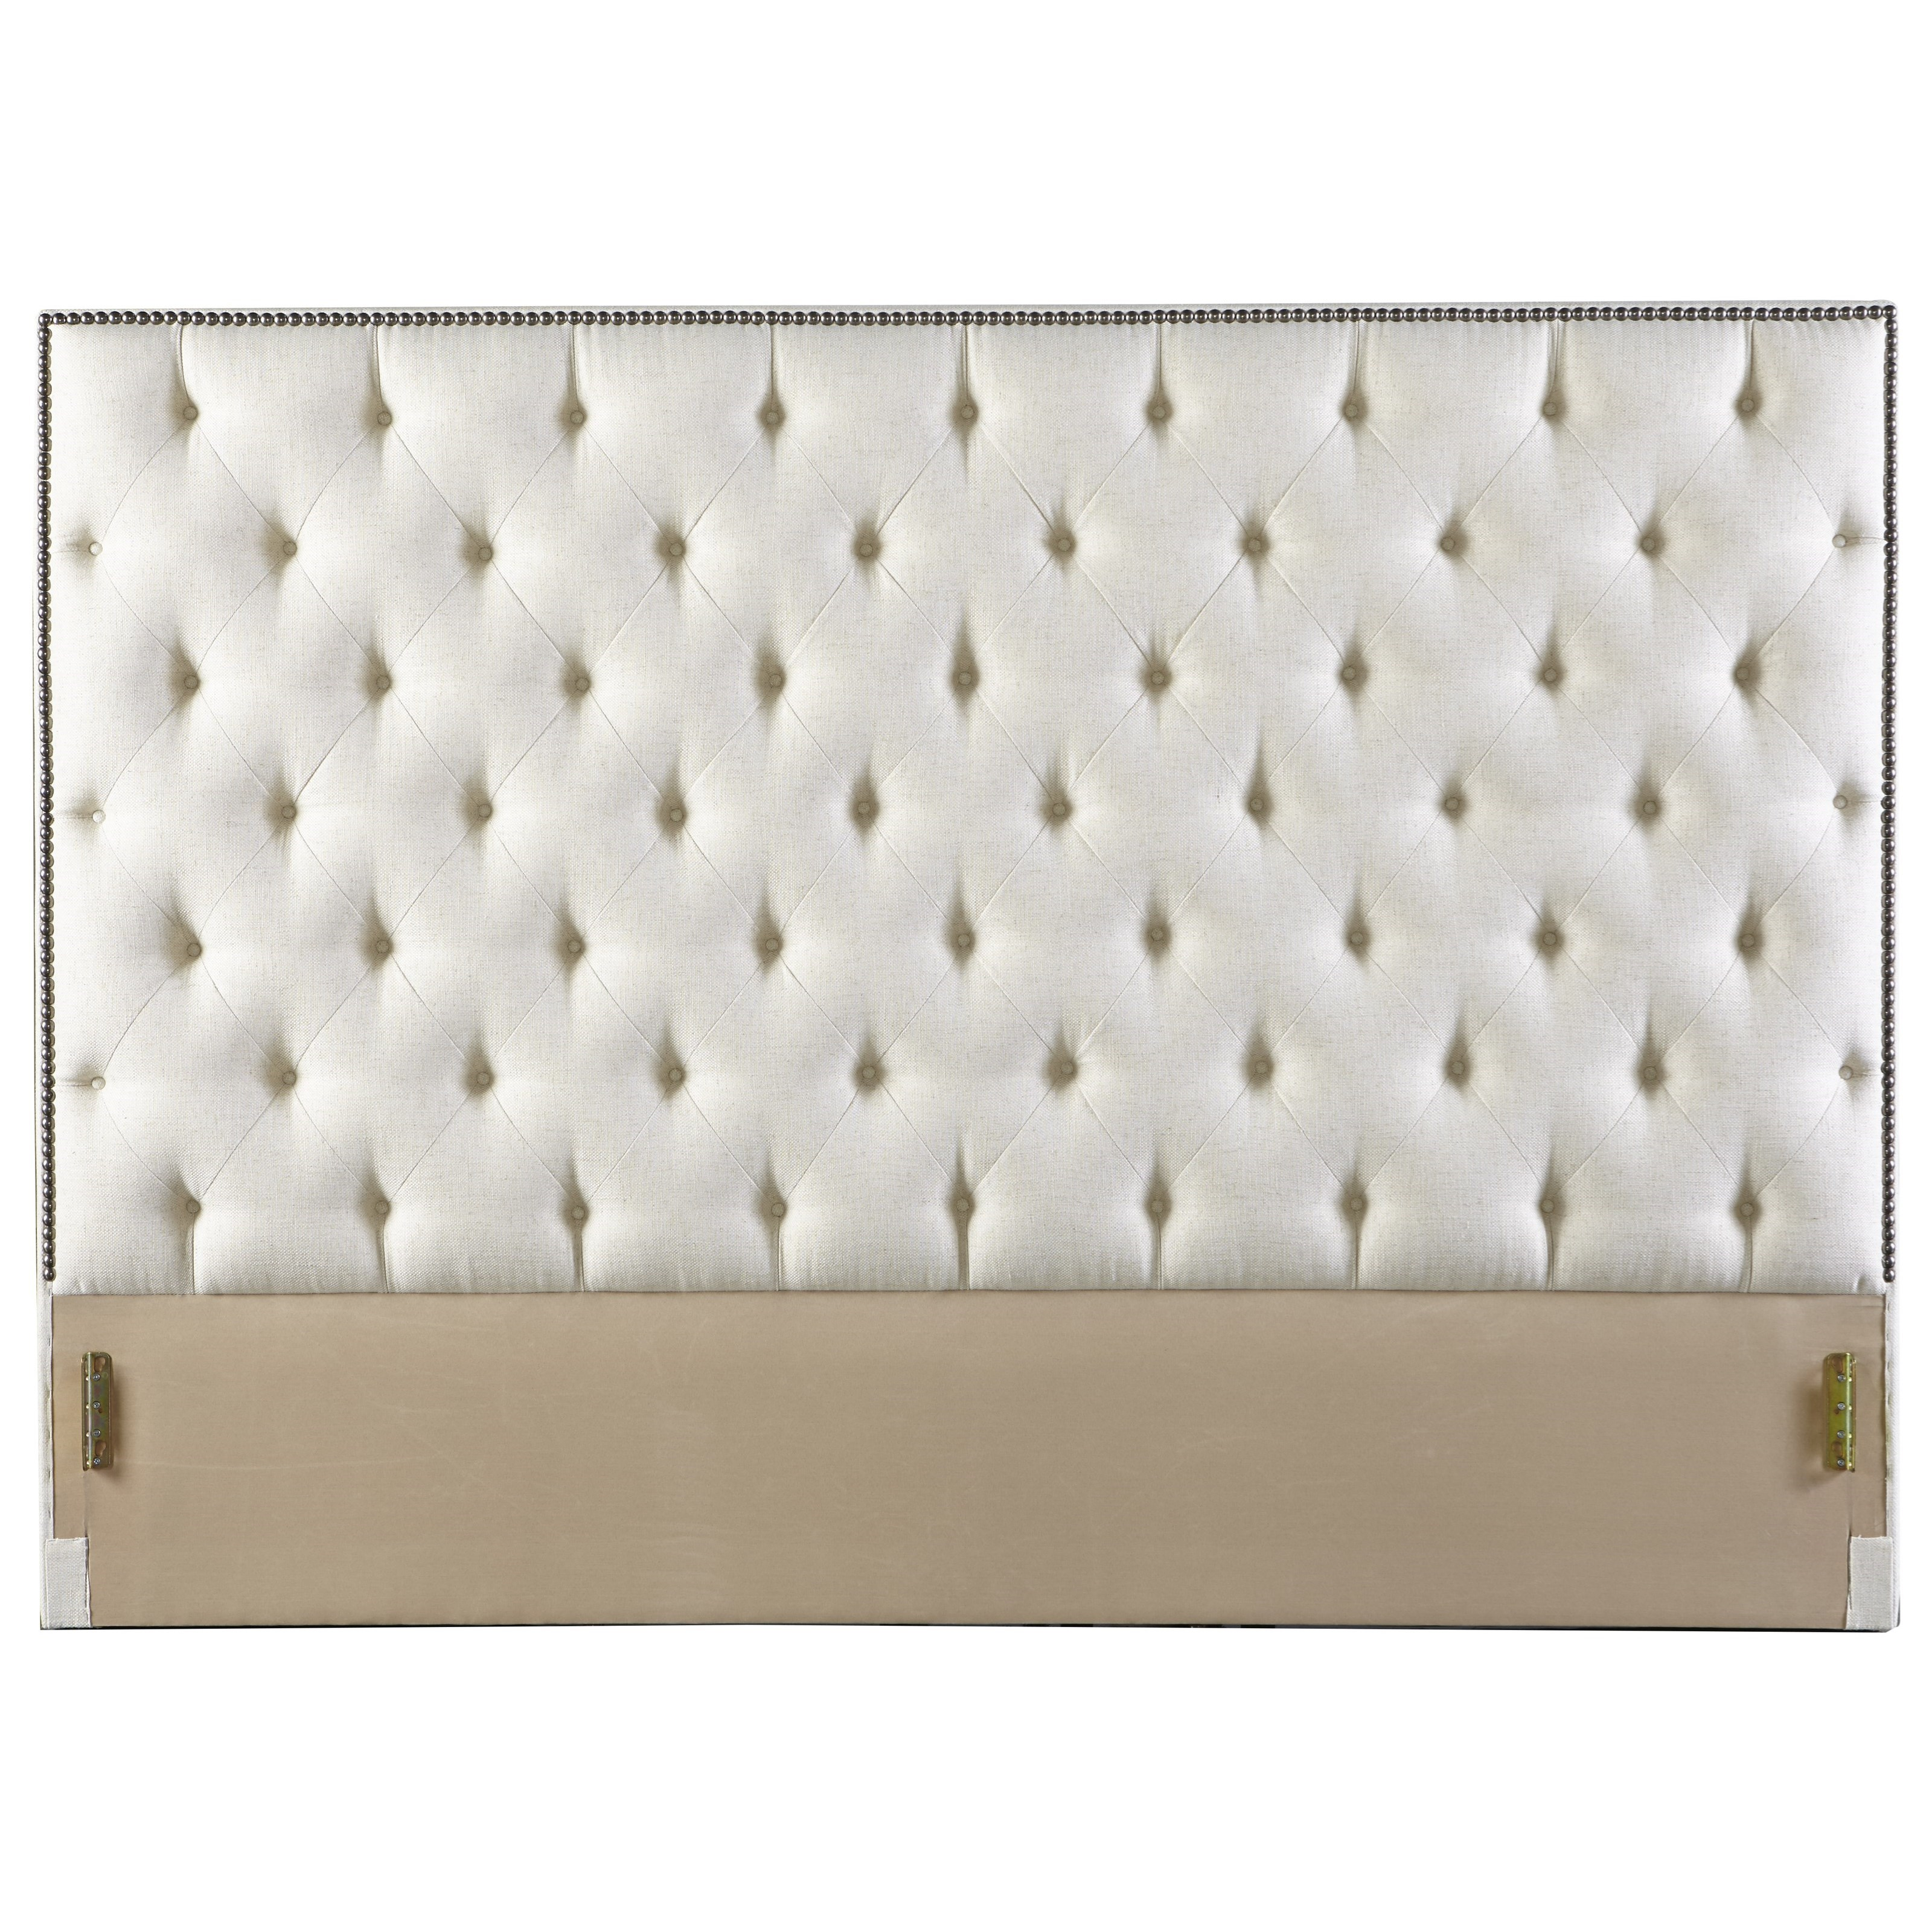 "My Style - Beds Hamilton 60"" Queen Headboard by Rowe at Baer's Furniture"